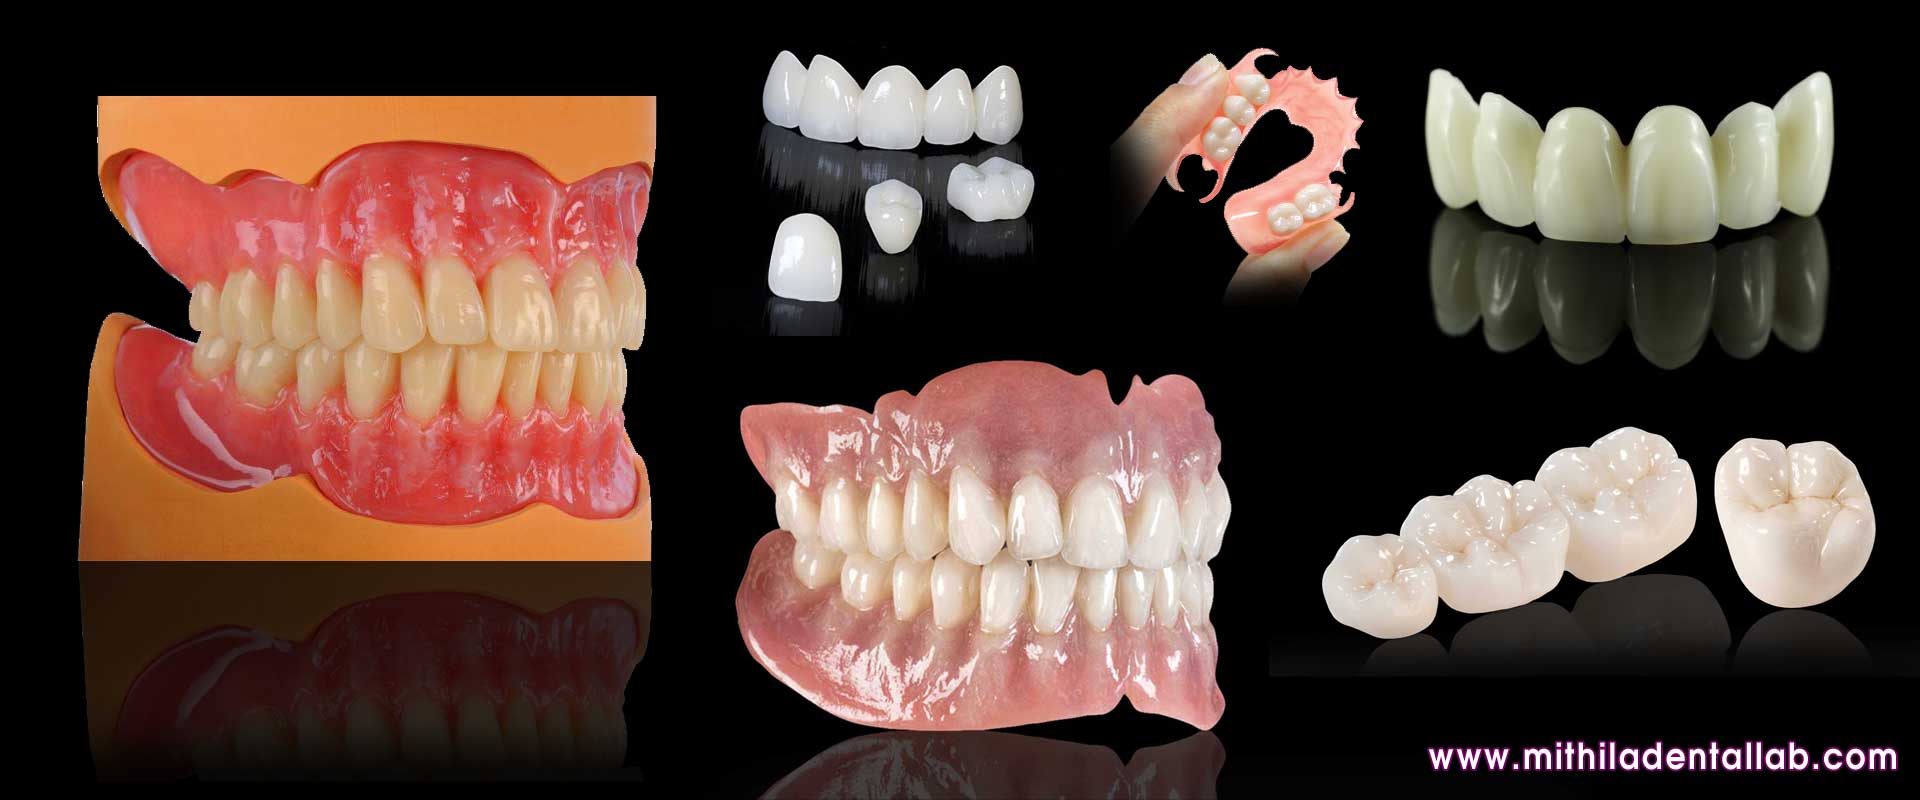 denture manufacturers exporters suppliers in india punjab ludhiana